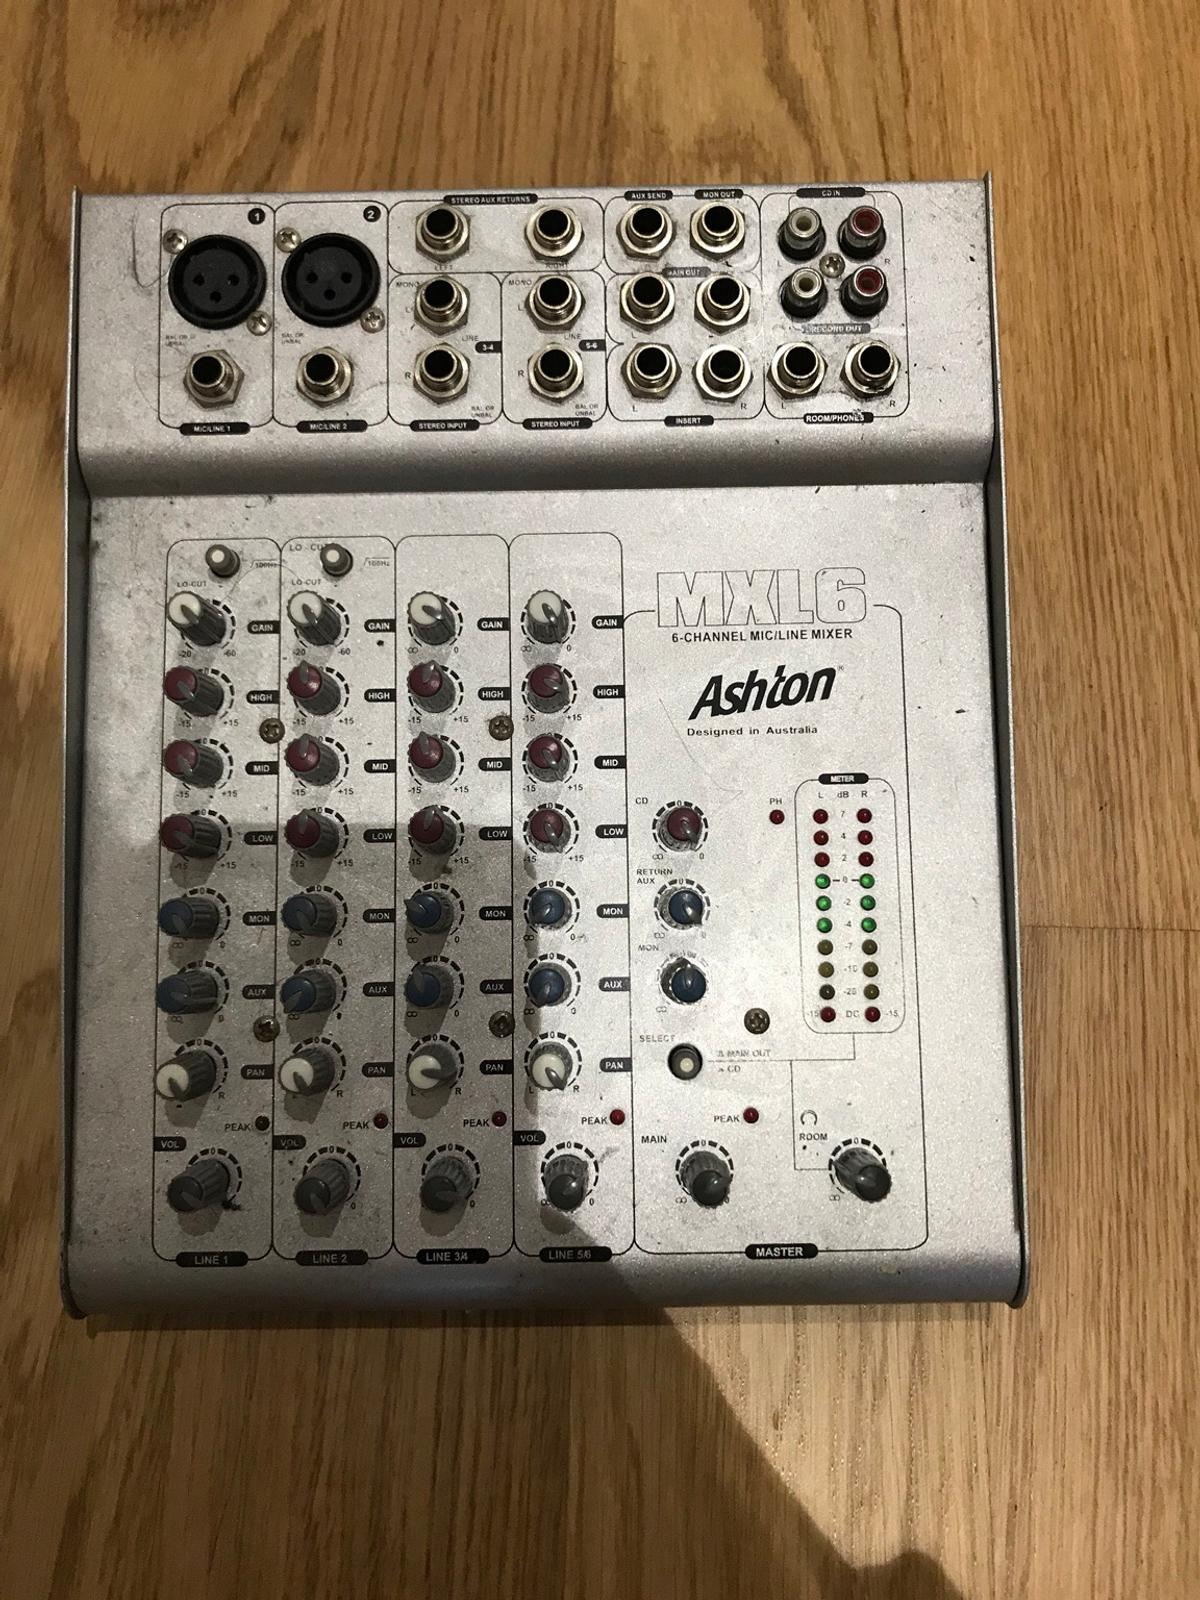 Mixers,decks Dj quick sale in UB2 Ealing for £70 00 for sale